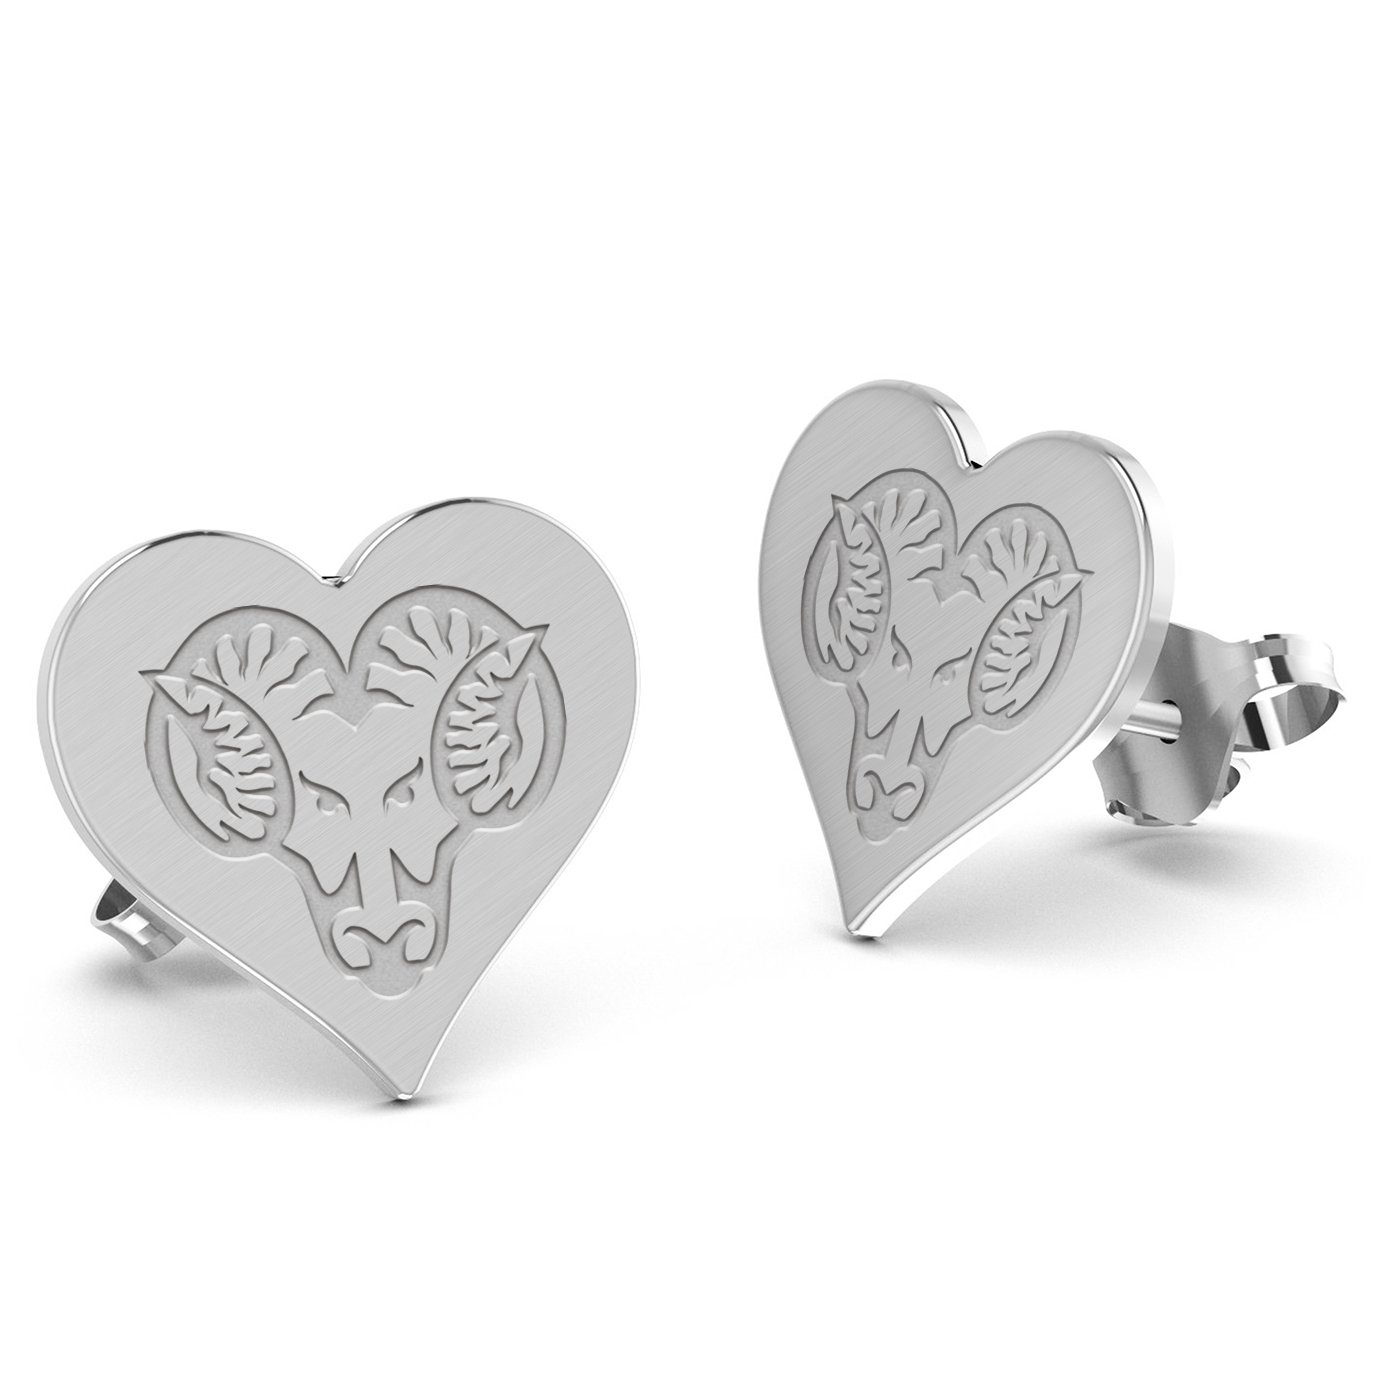 West Chester Golden Rams Heart Stud Earring See Image on Model for Size Reference